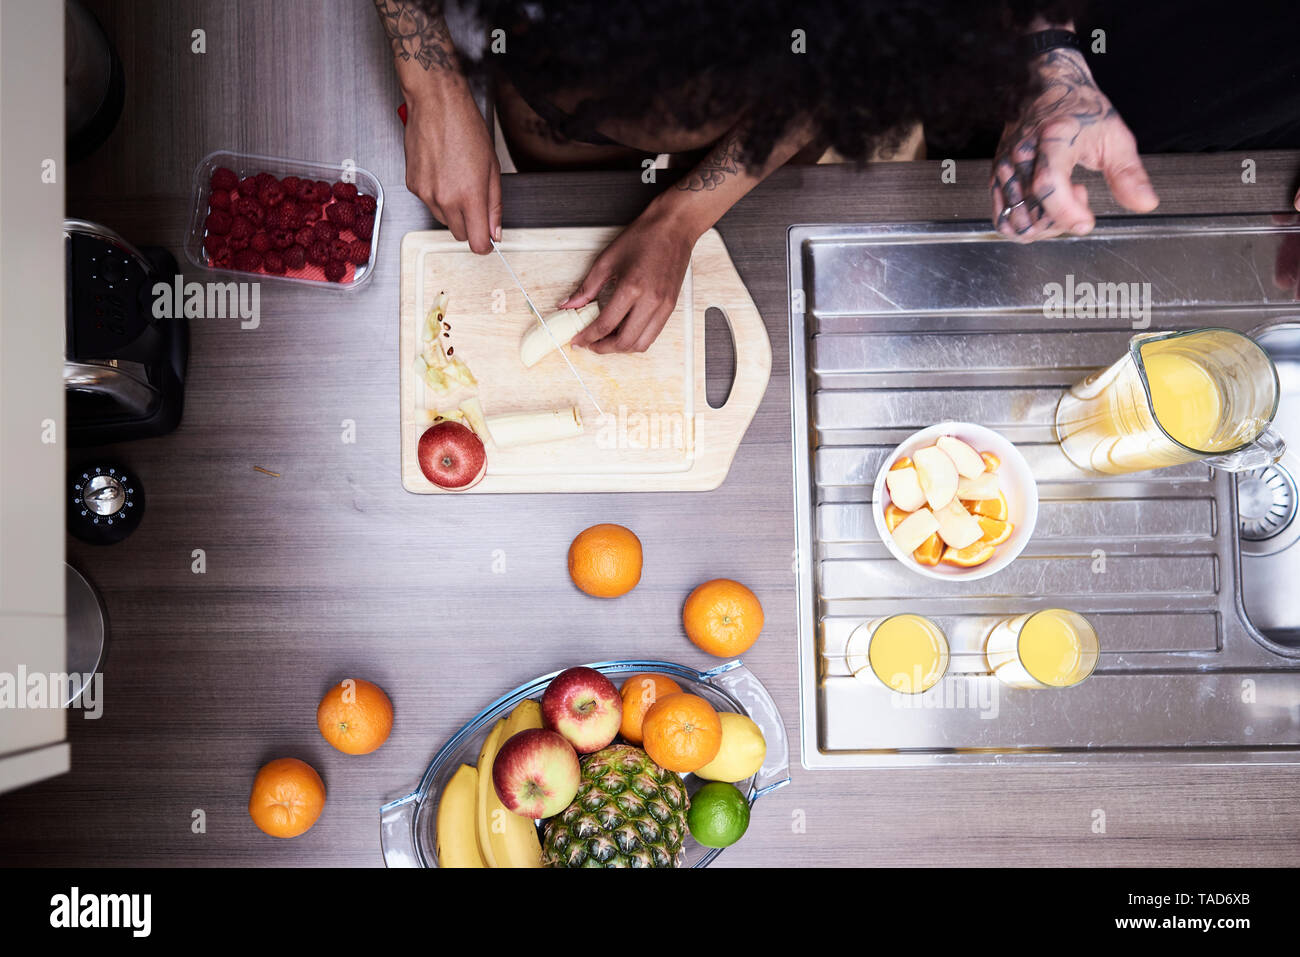 Top view of couple cutting fruit in kitchen - Stock Image